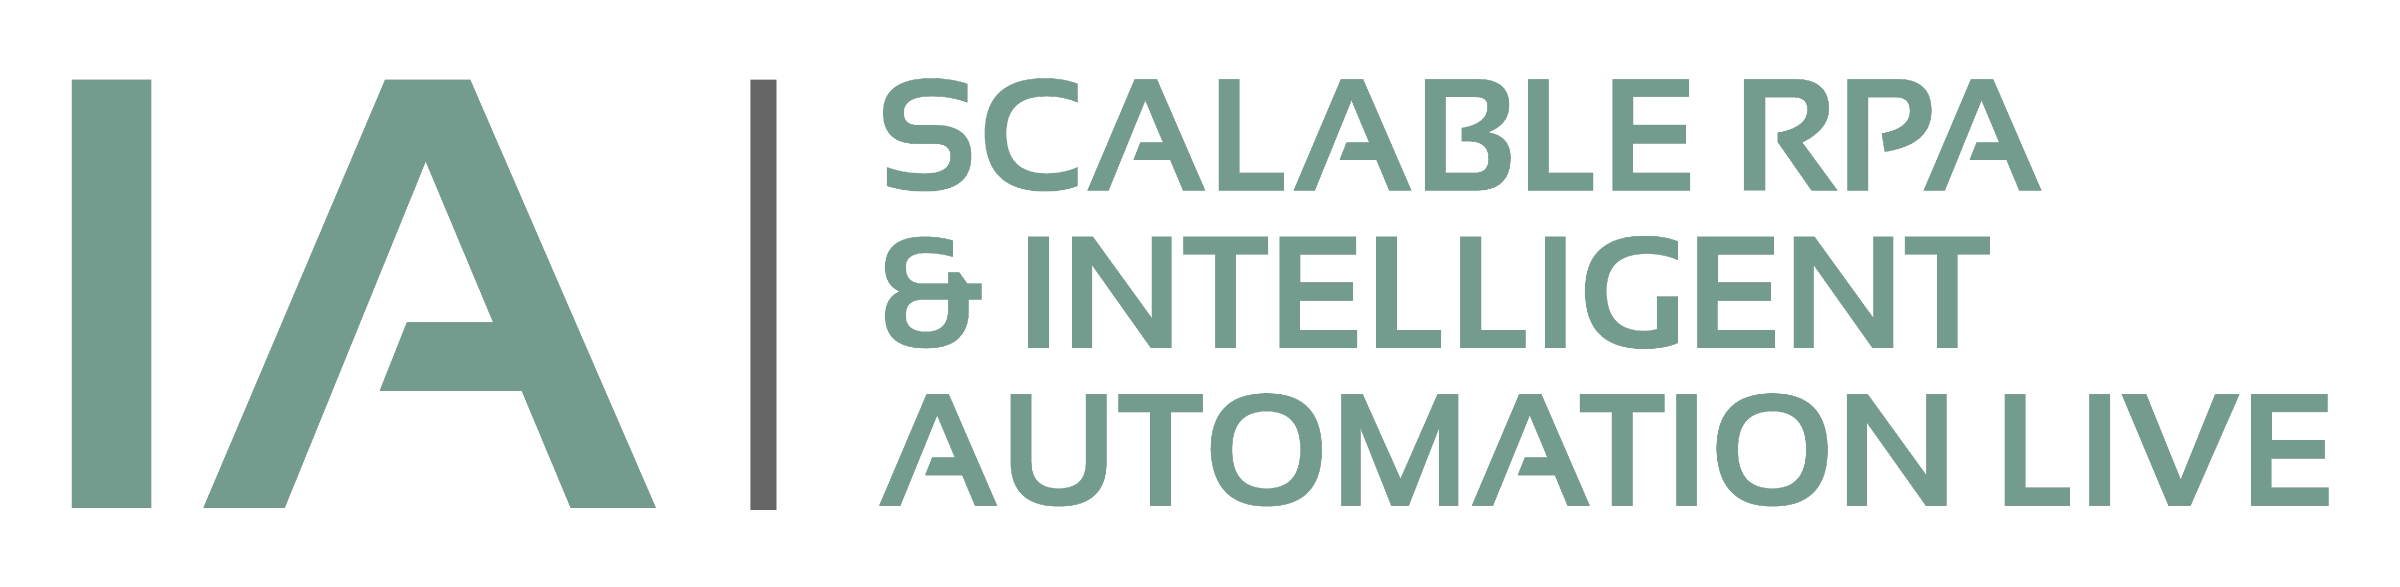 Scalable RPA & Intelligent Automation Live